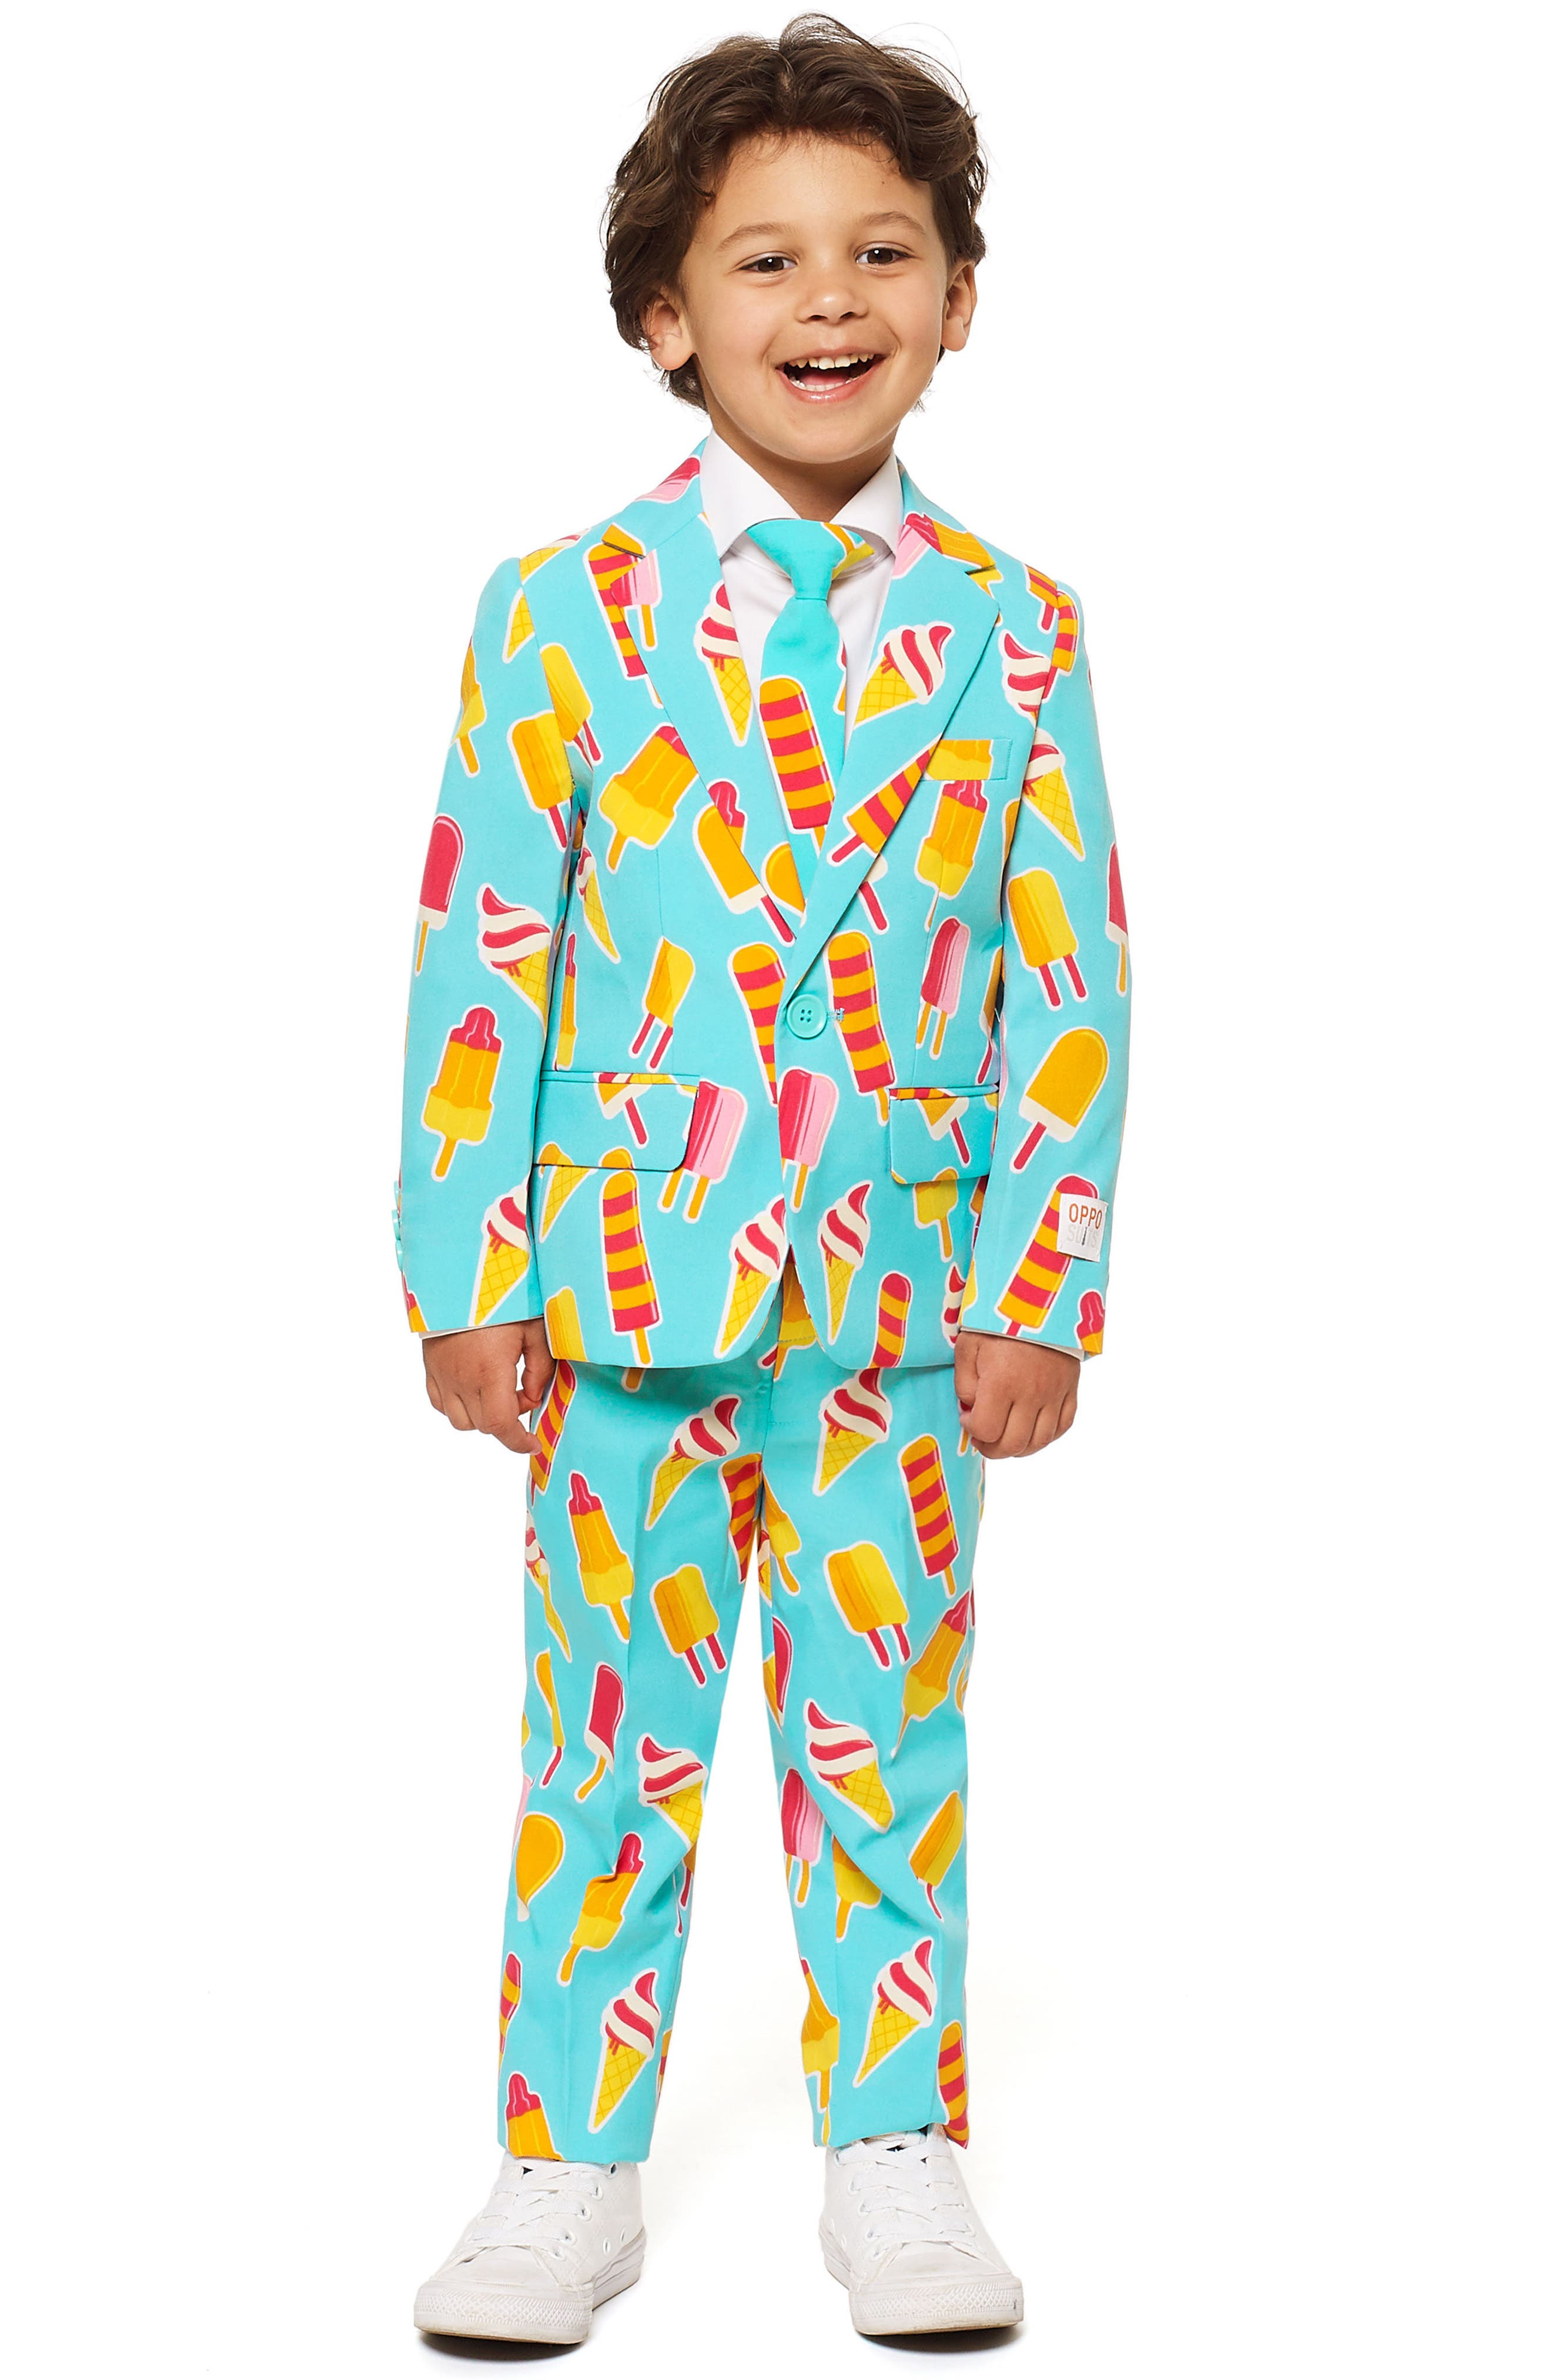 Cool Cones Two-Piece Suit with Tie,                             Main thumbnail 1, color,                             BLUE